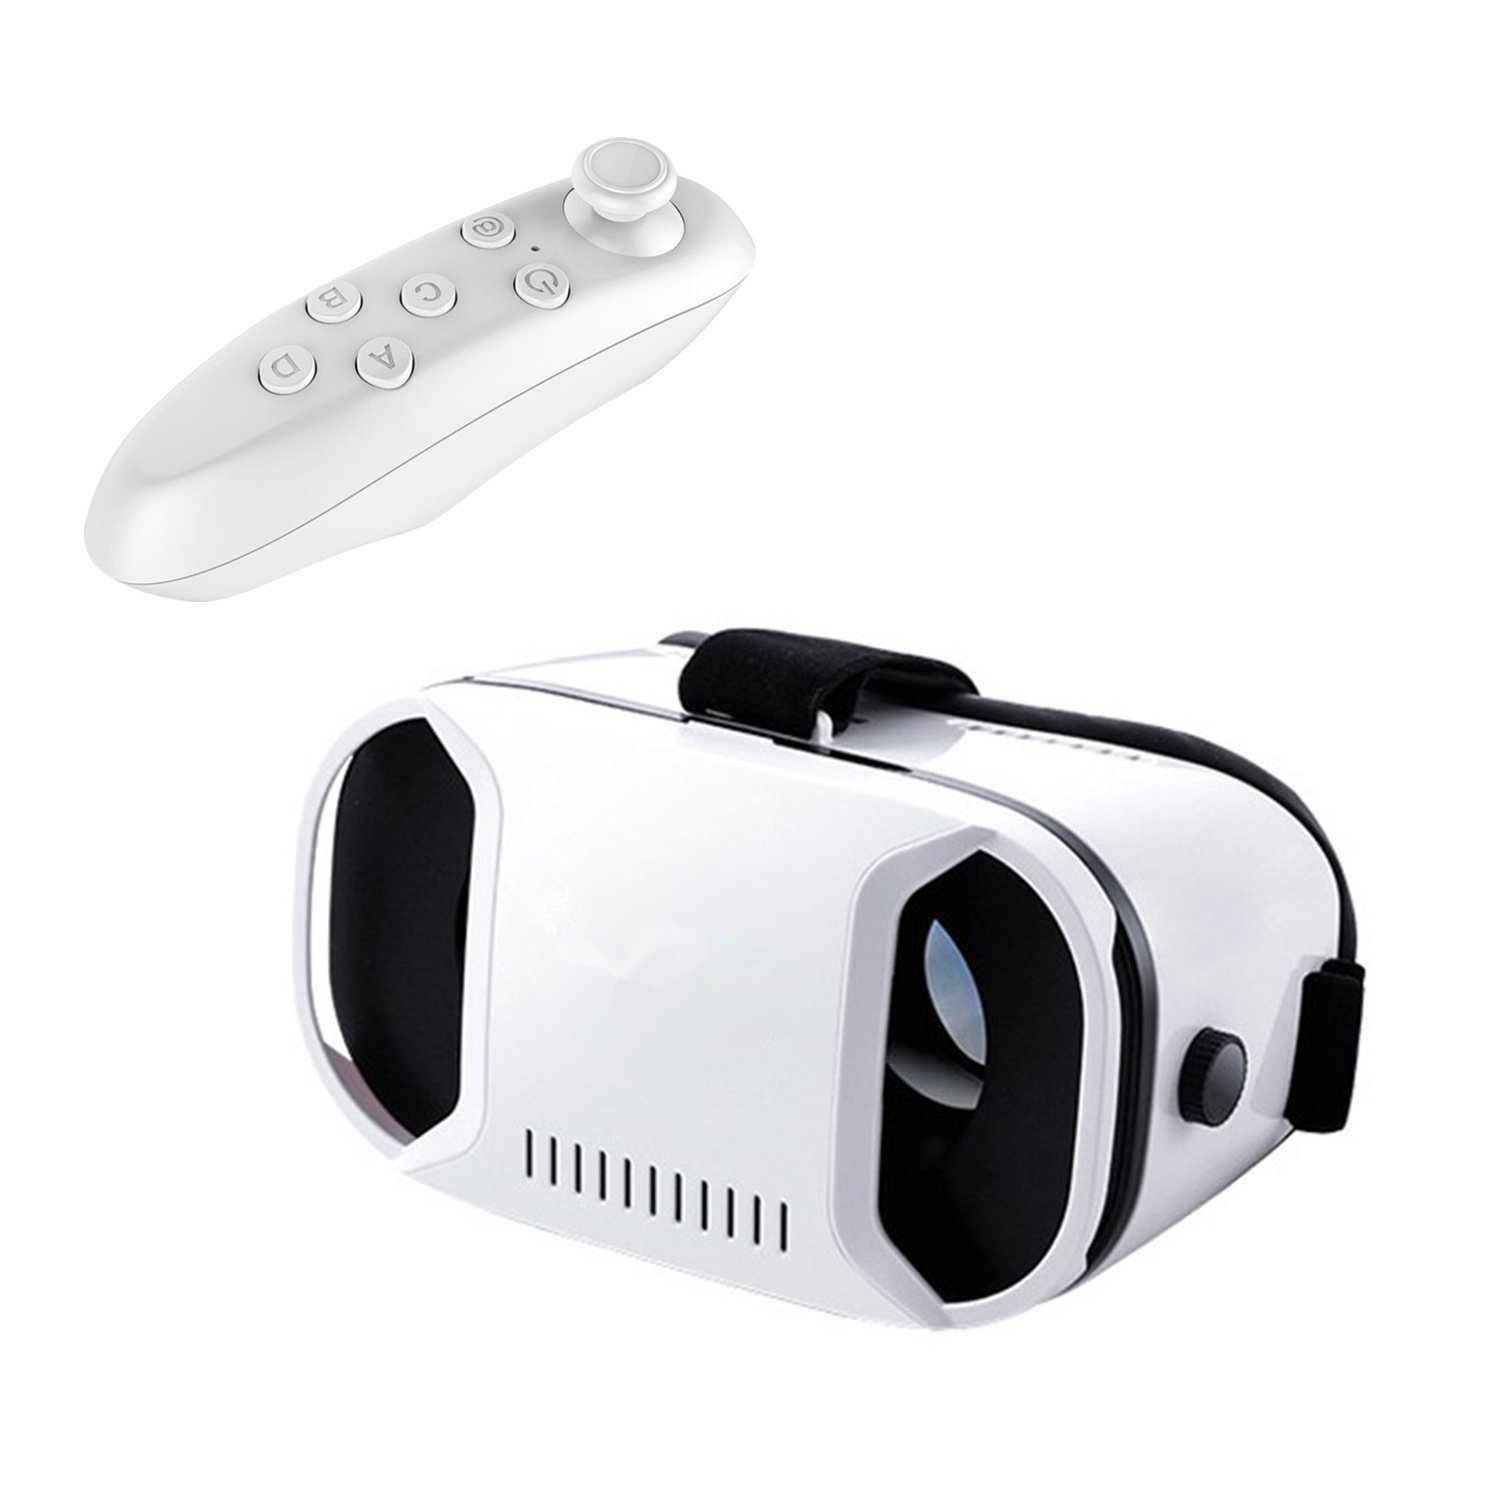 Tsanglight 3D VR Headset/Glasses Virtual Reality Headset with Remote Controller for Android Samsung Galaxy S7 Edge/S7/S6/S5, IOS iPhone 7/6/6S Plus/SE & All Other SmartPhones[4.0-6.1 inch] - White